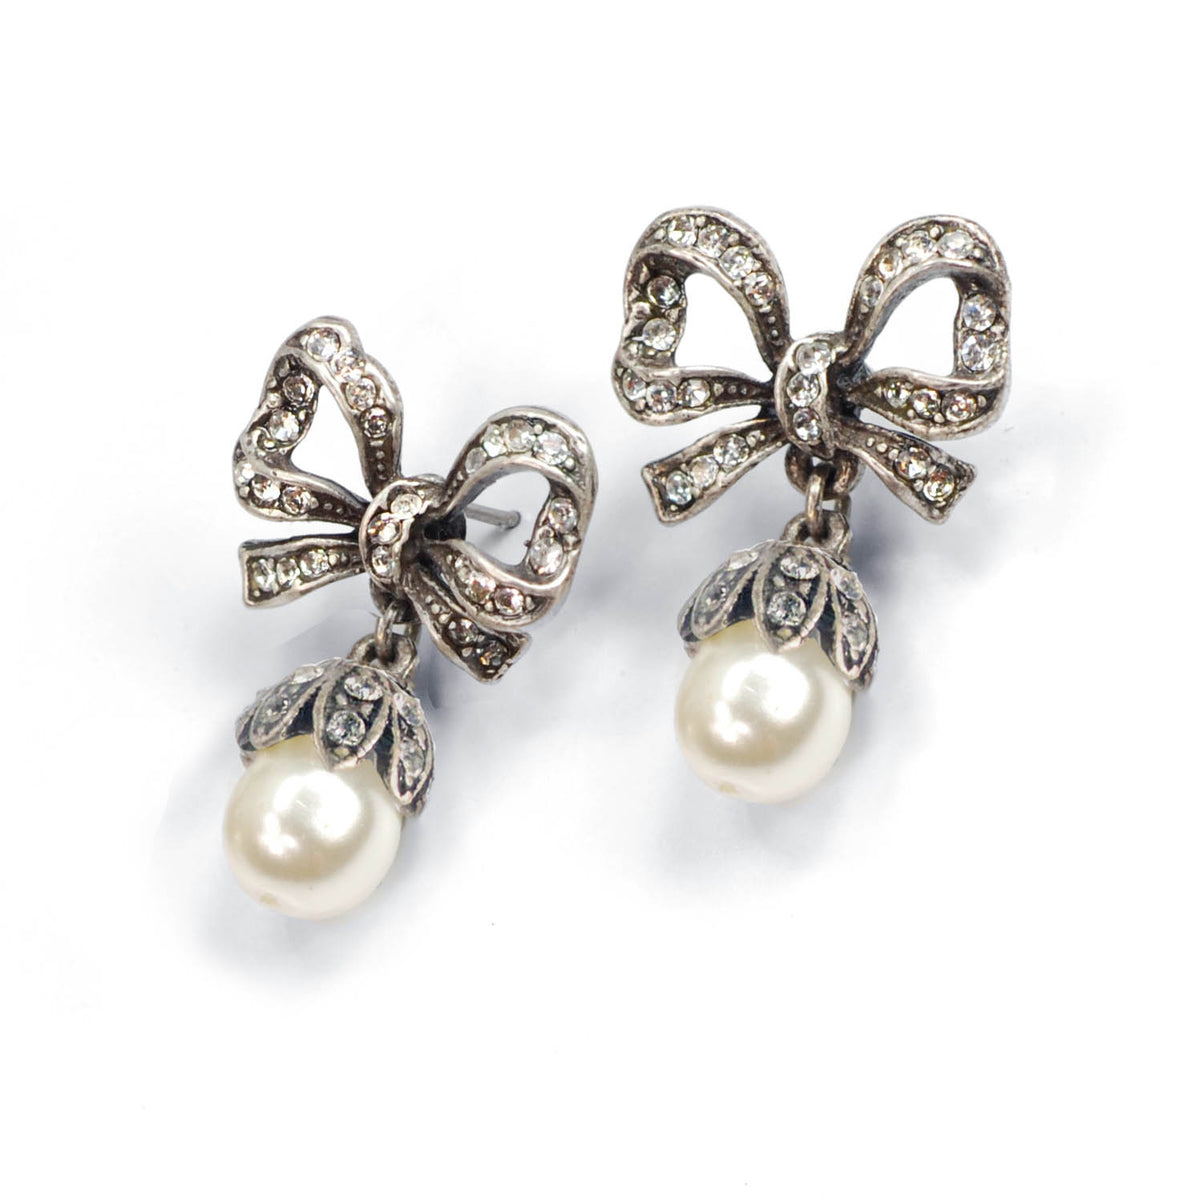 Crystal Bow Pearl Earrings E1265 - Sweet Romance Wholesale